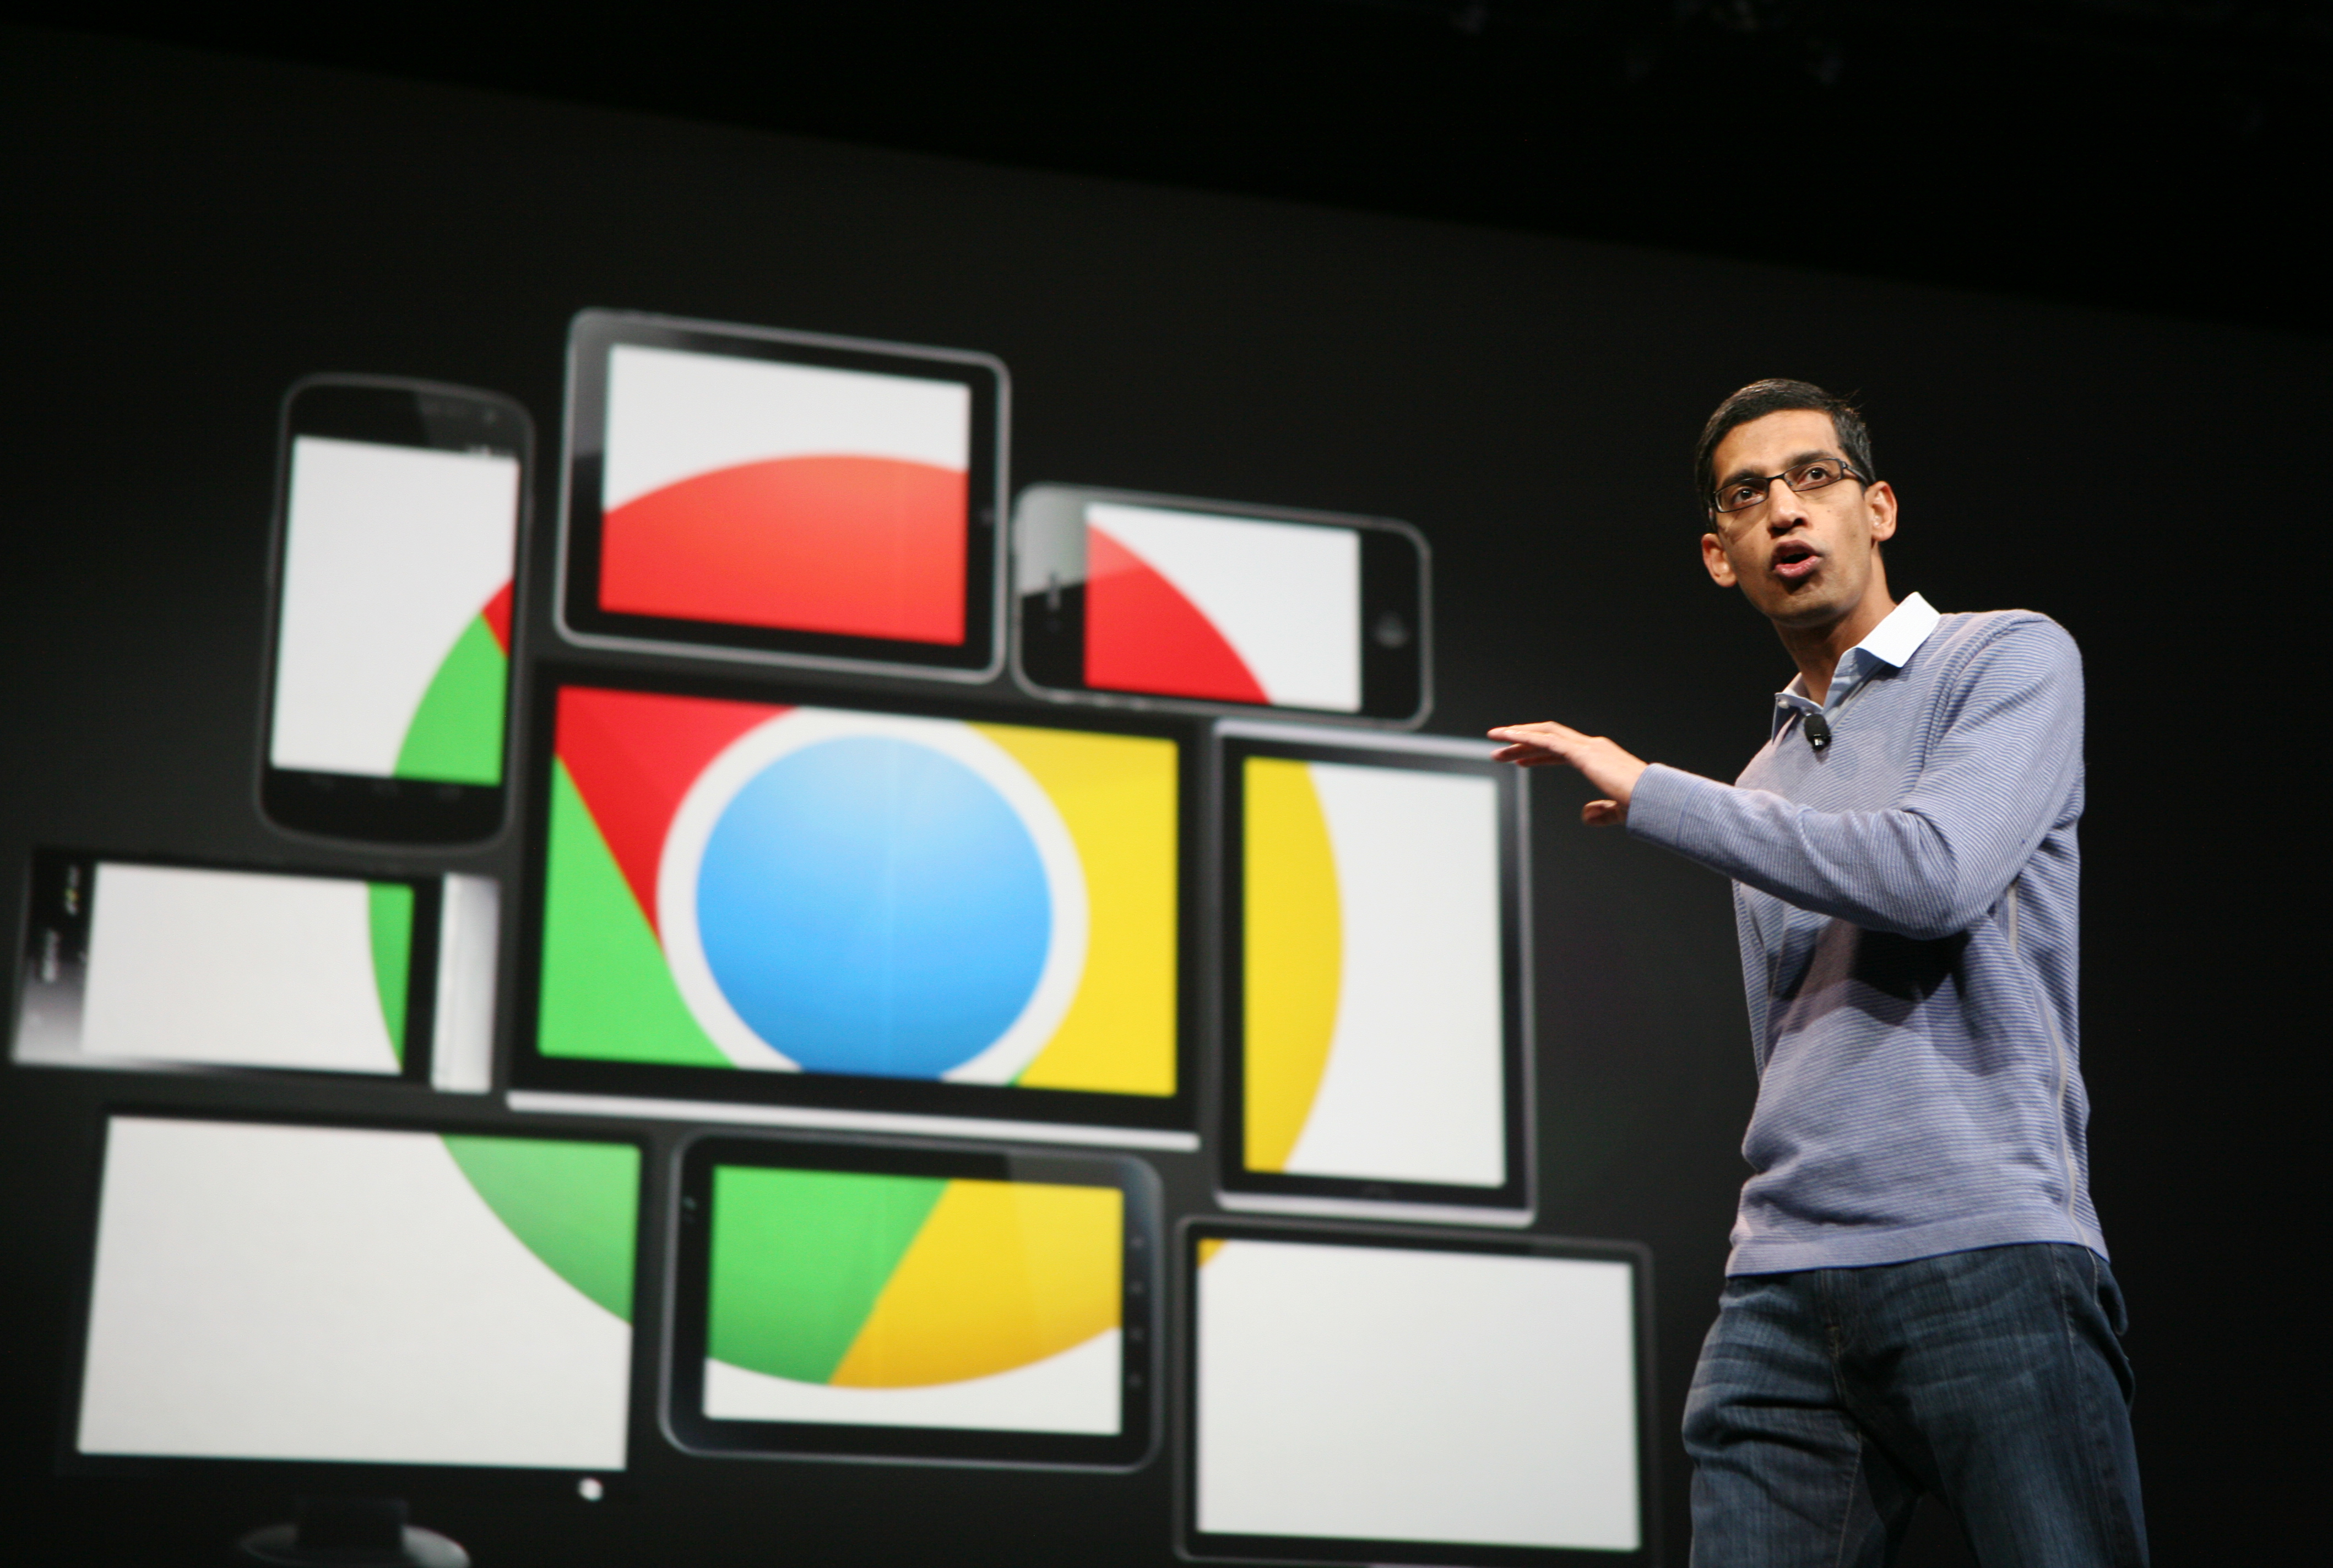 Sundar Pichai, senior vice president of Chrome, speaks at Google's annual developer conference, Google I/O, in San Francisco on June 28, 2012.